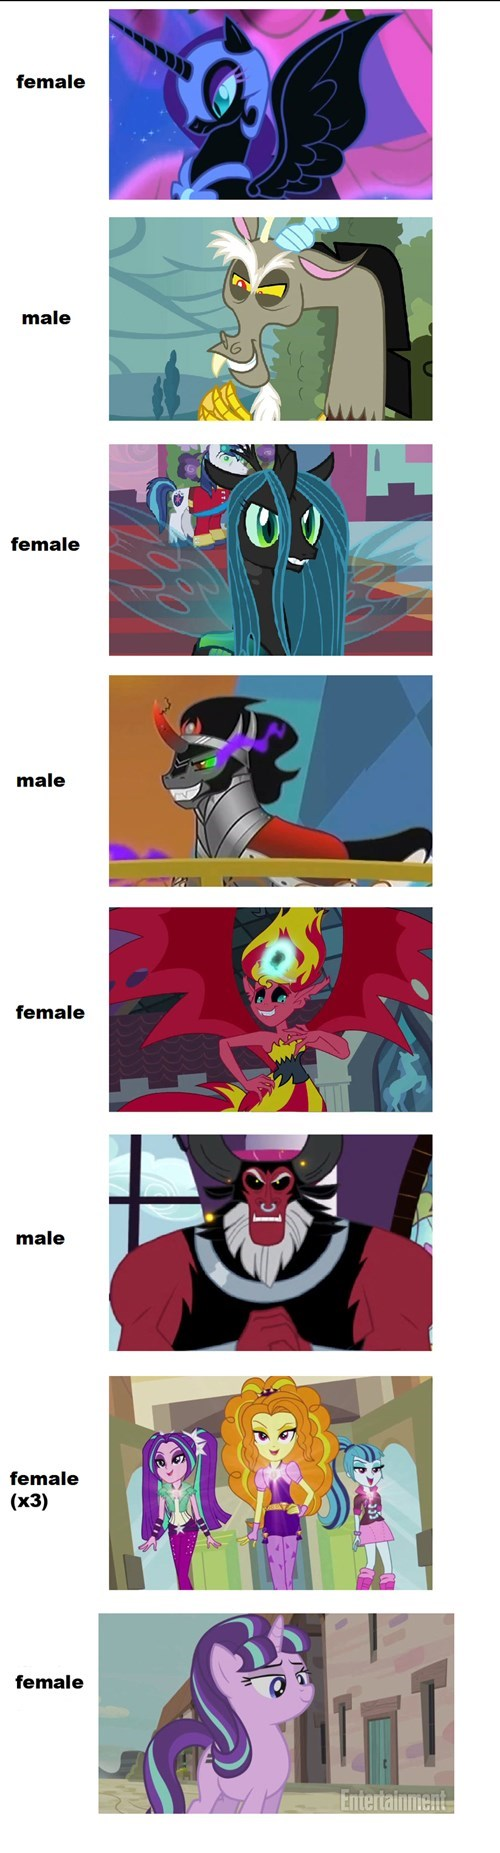 gender,villains,MLP